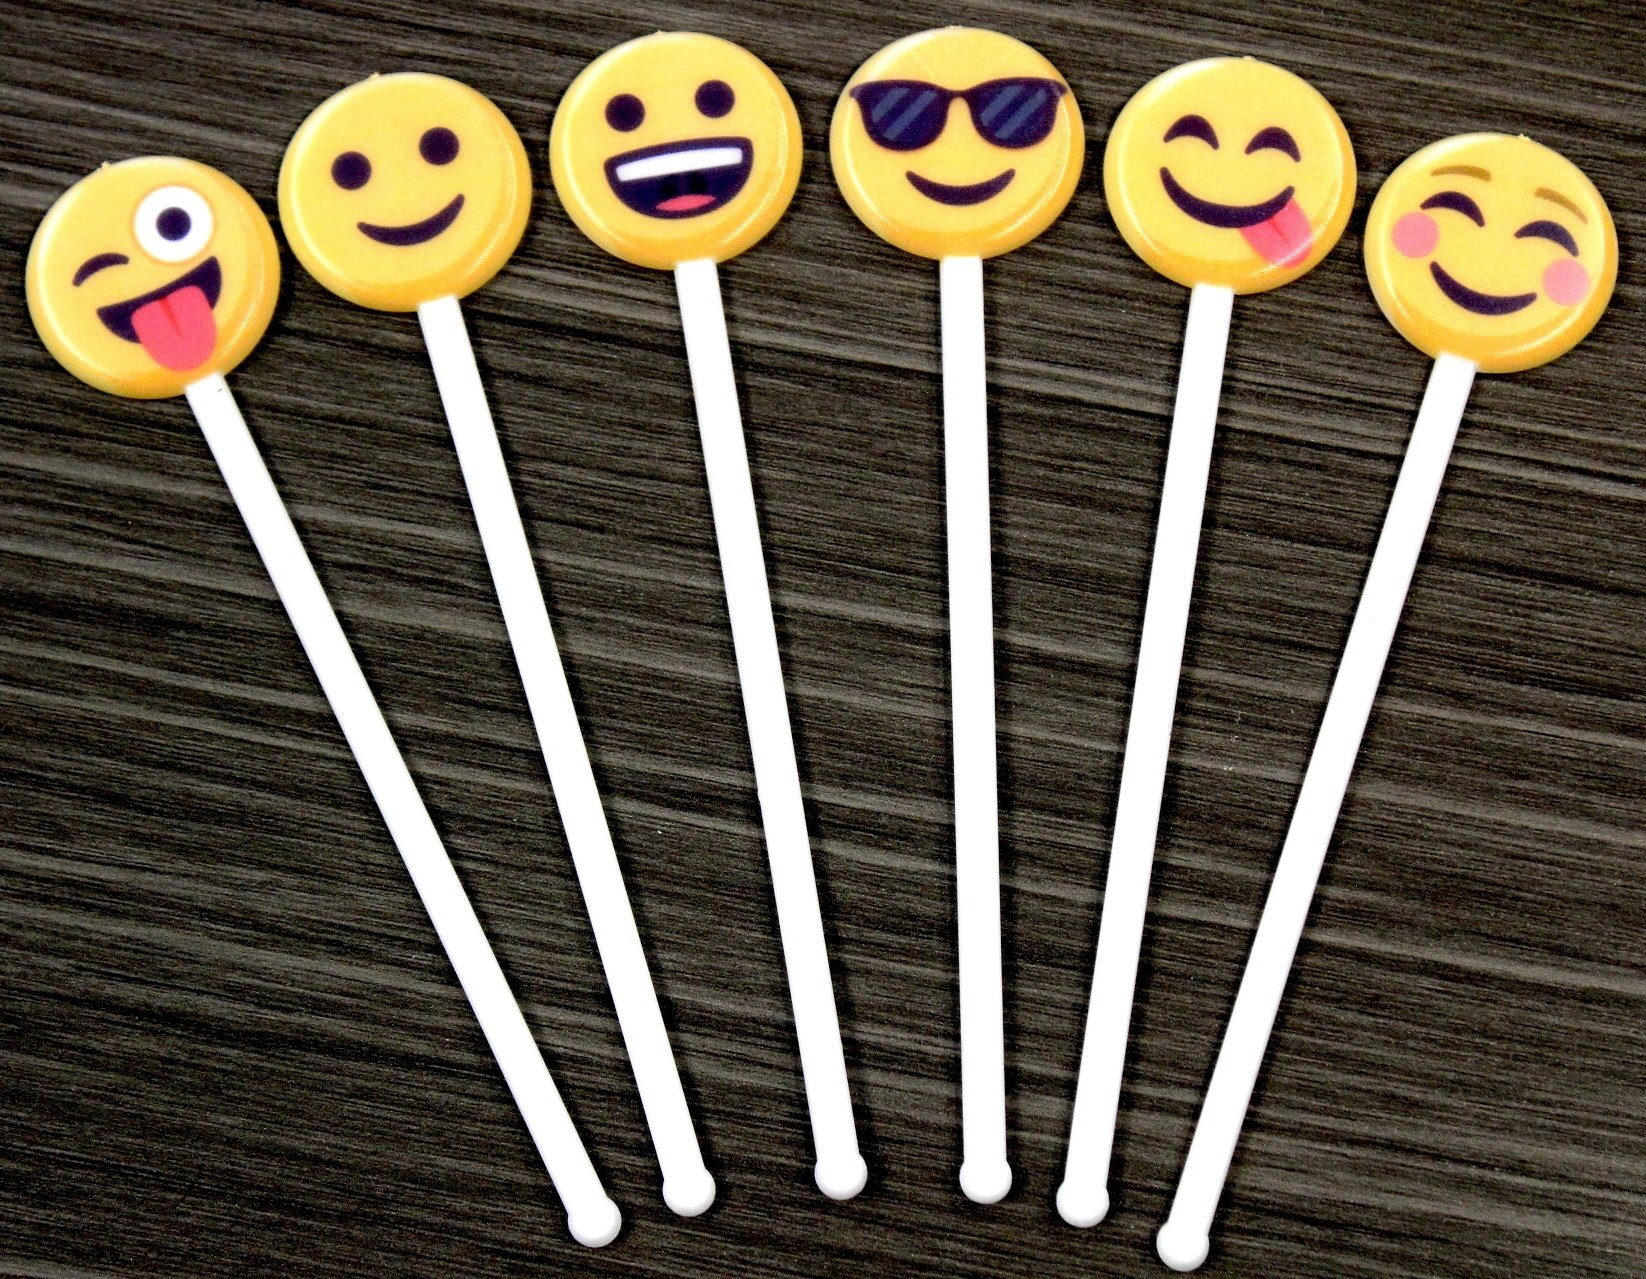 NEW! Add Your Favorite Emojis to Royer Stirrers, Picks & More!